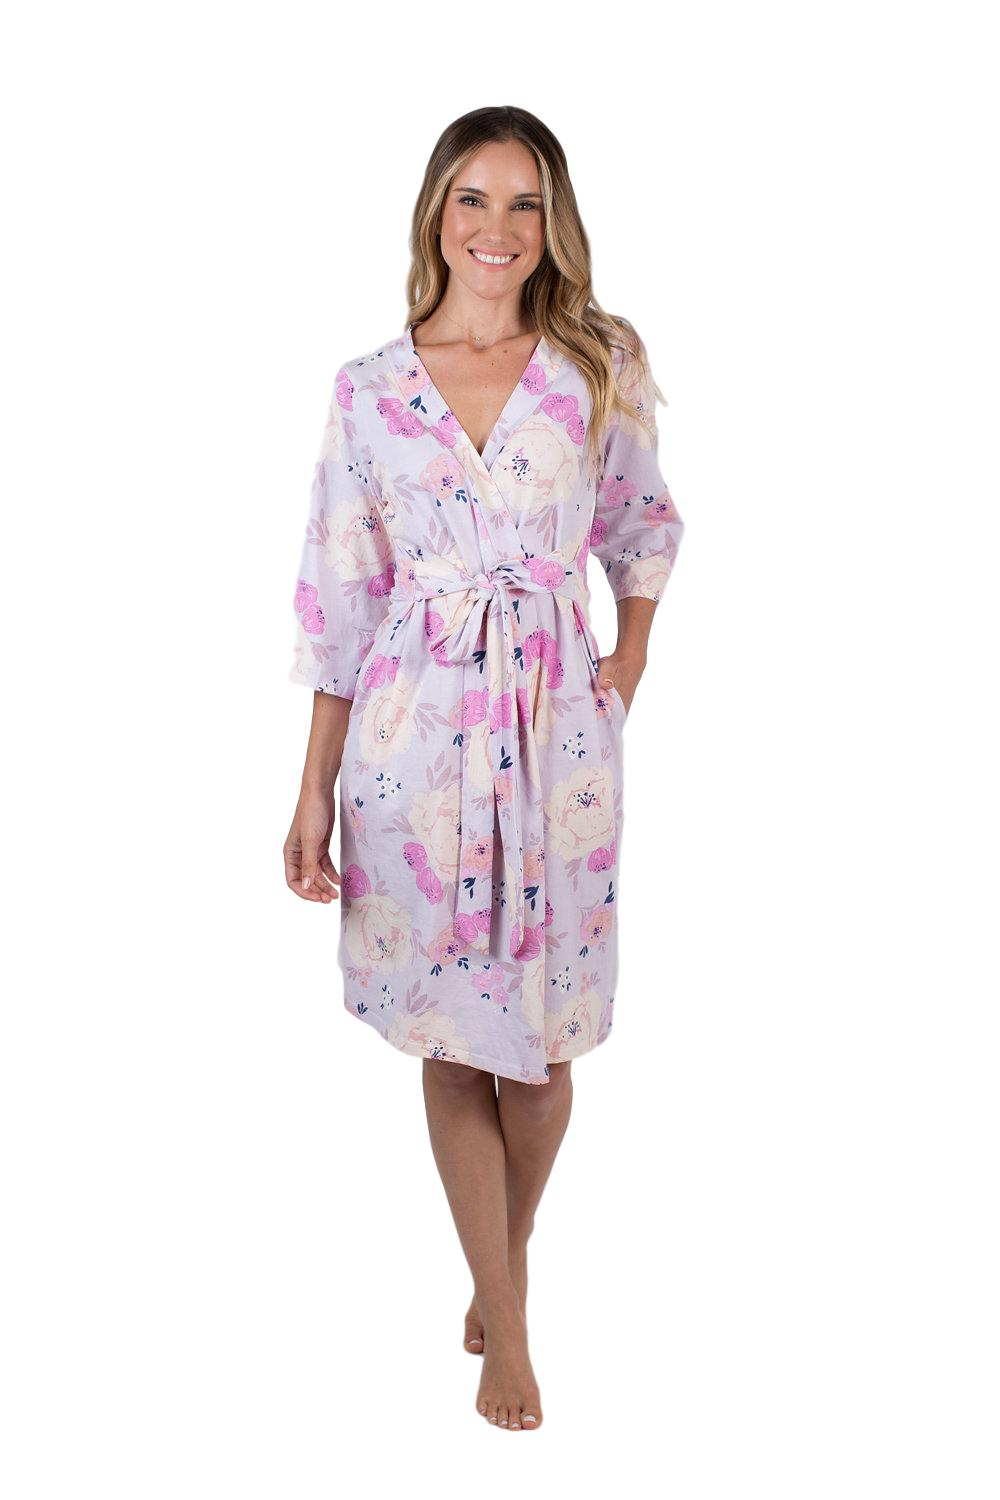 Purple, pink, and cream flowered print. Anais is the print for you! Pack your hospital bag or give the perfect gift for mom with this hospital robe. 3/4 sleeve length for easy IV access, belt tie for comfortable closure, and knee length for full coverage.